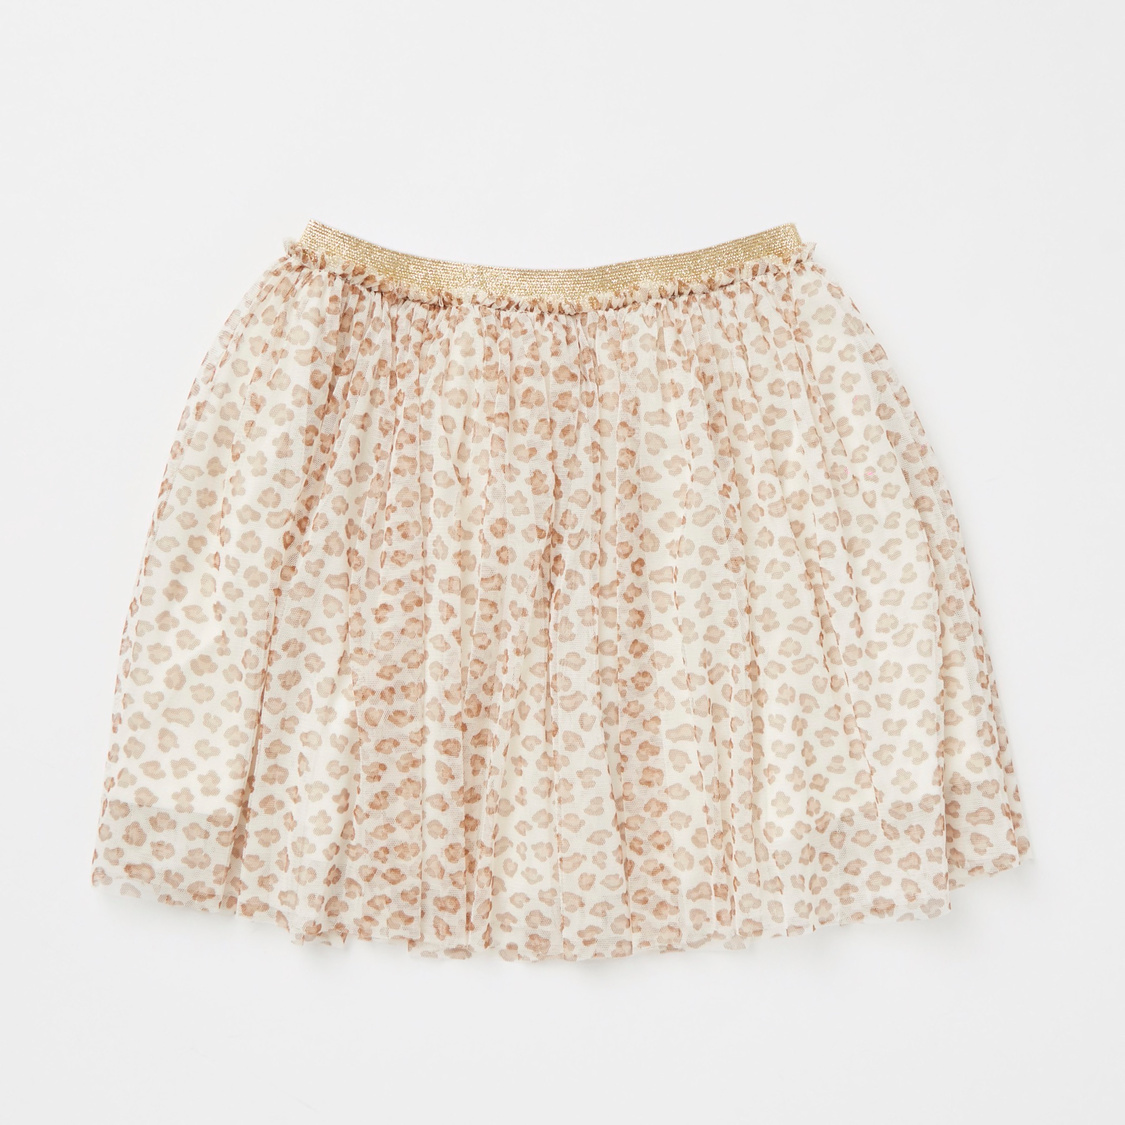 Sequin Detail Long Sleeves T-shirt with All-Over Print Skirt